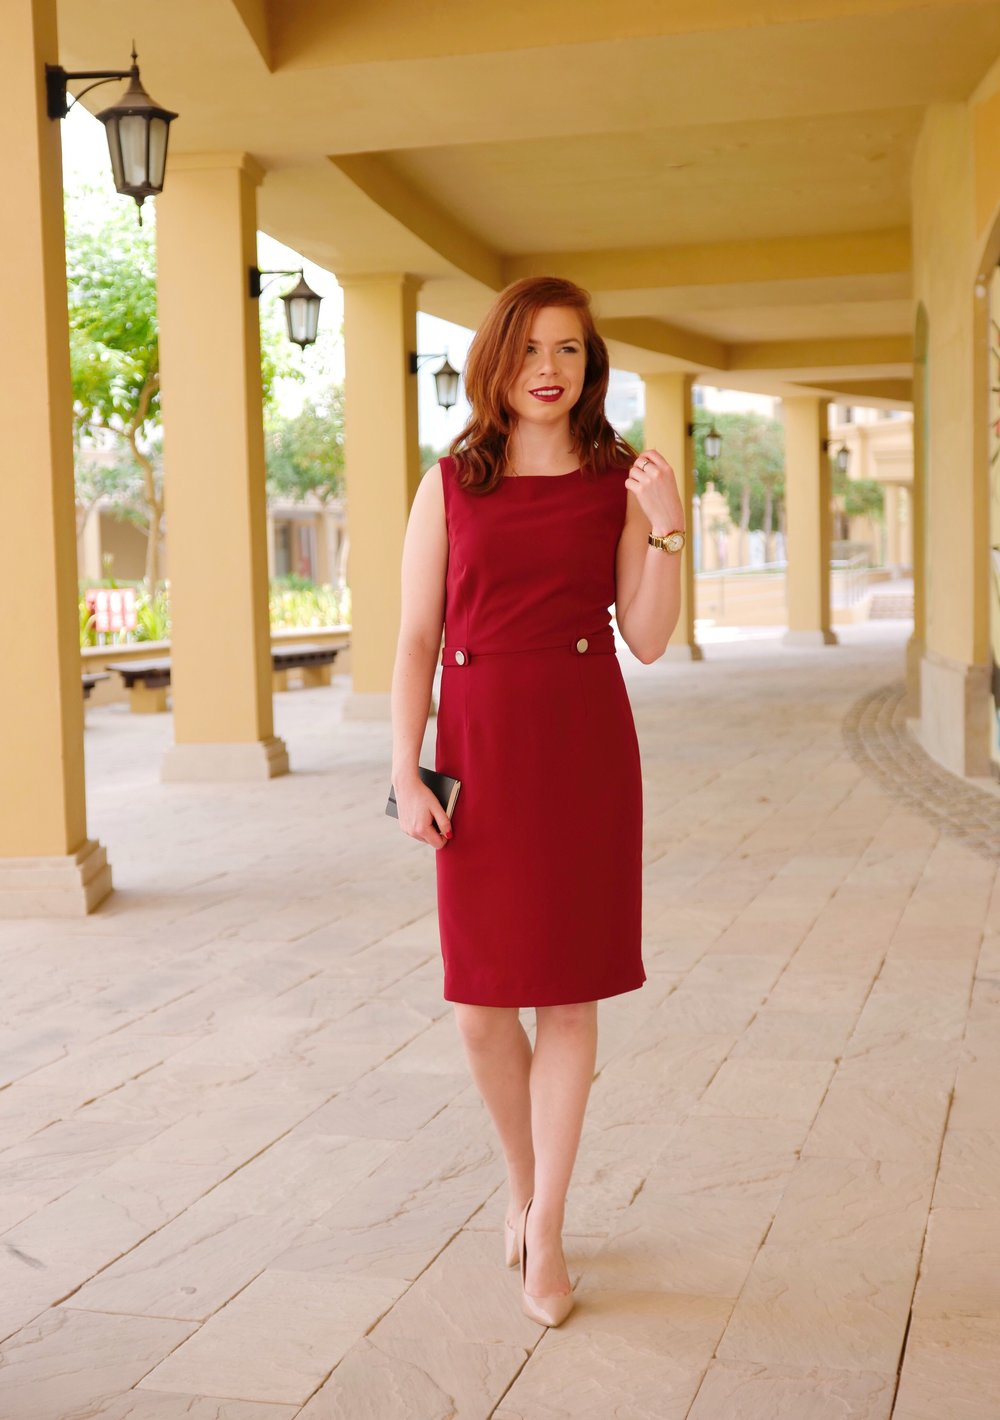 workwear - merlot office dress - nora gardner